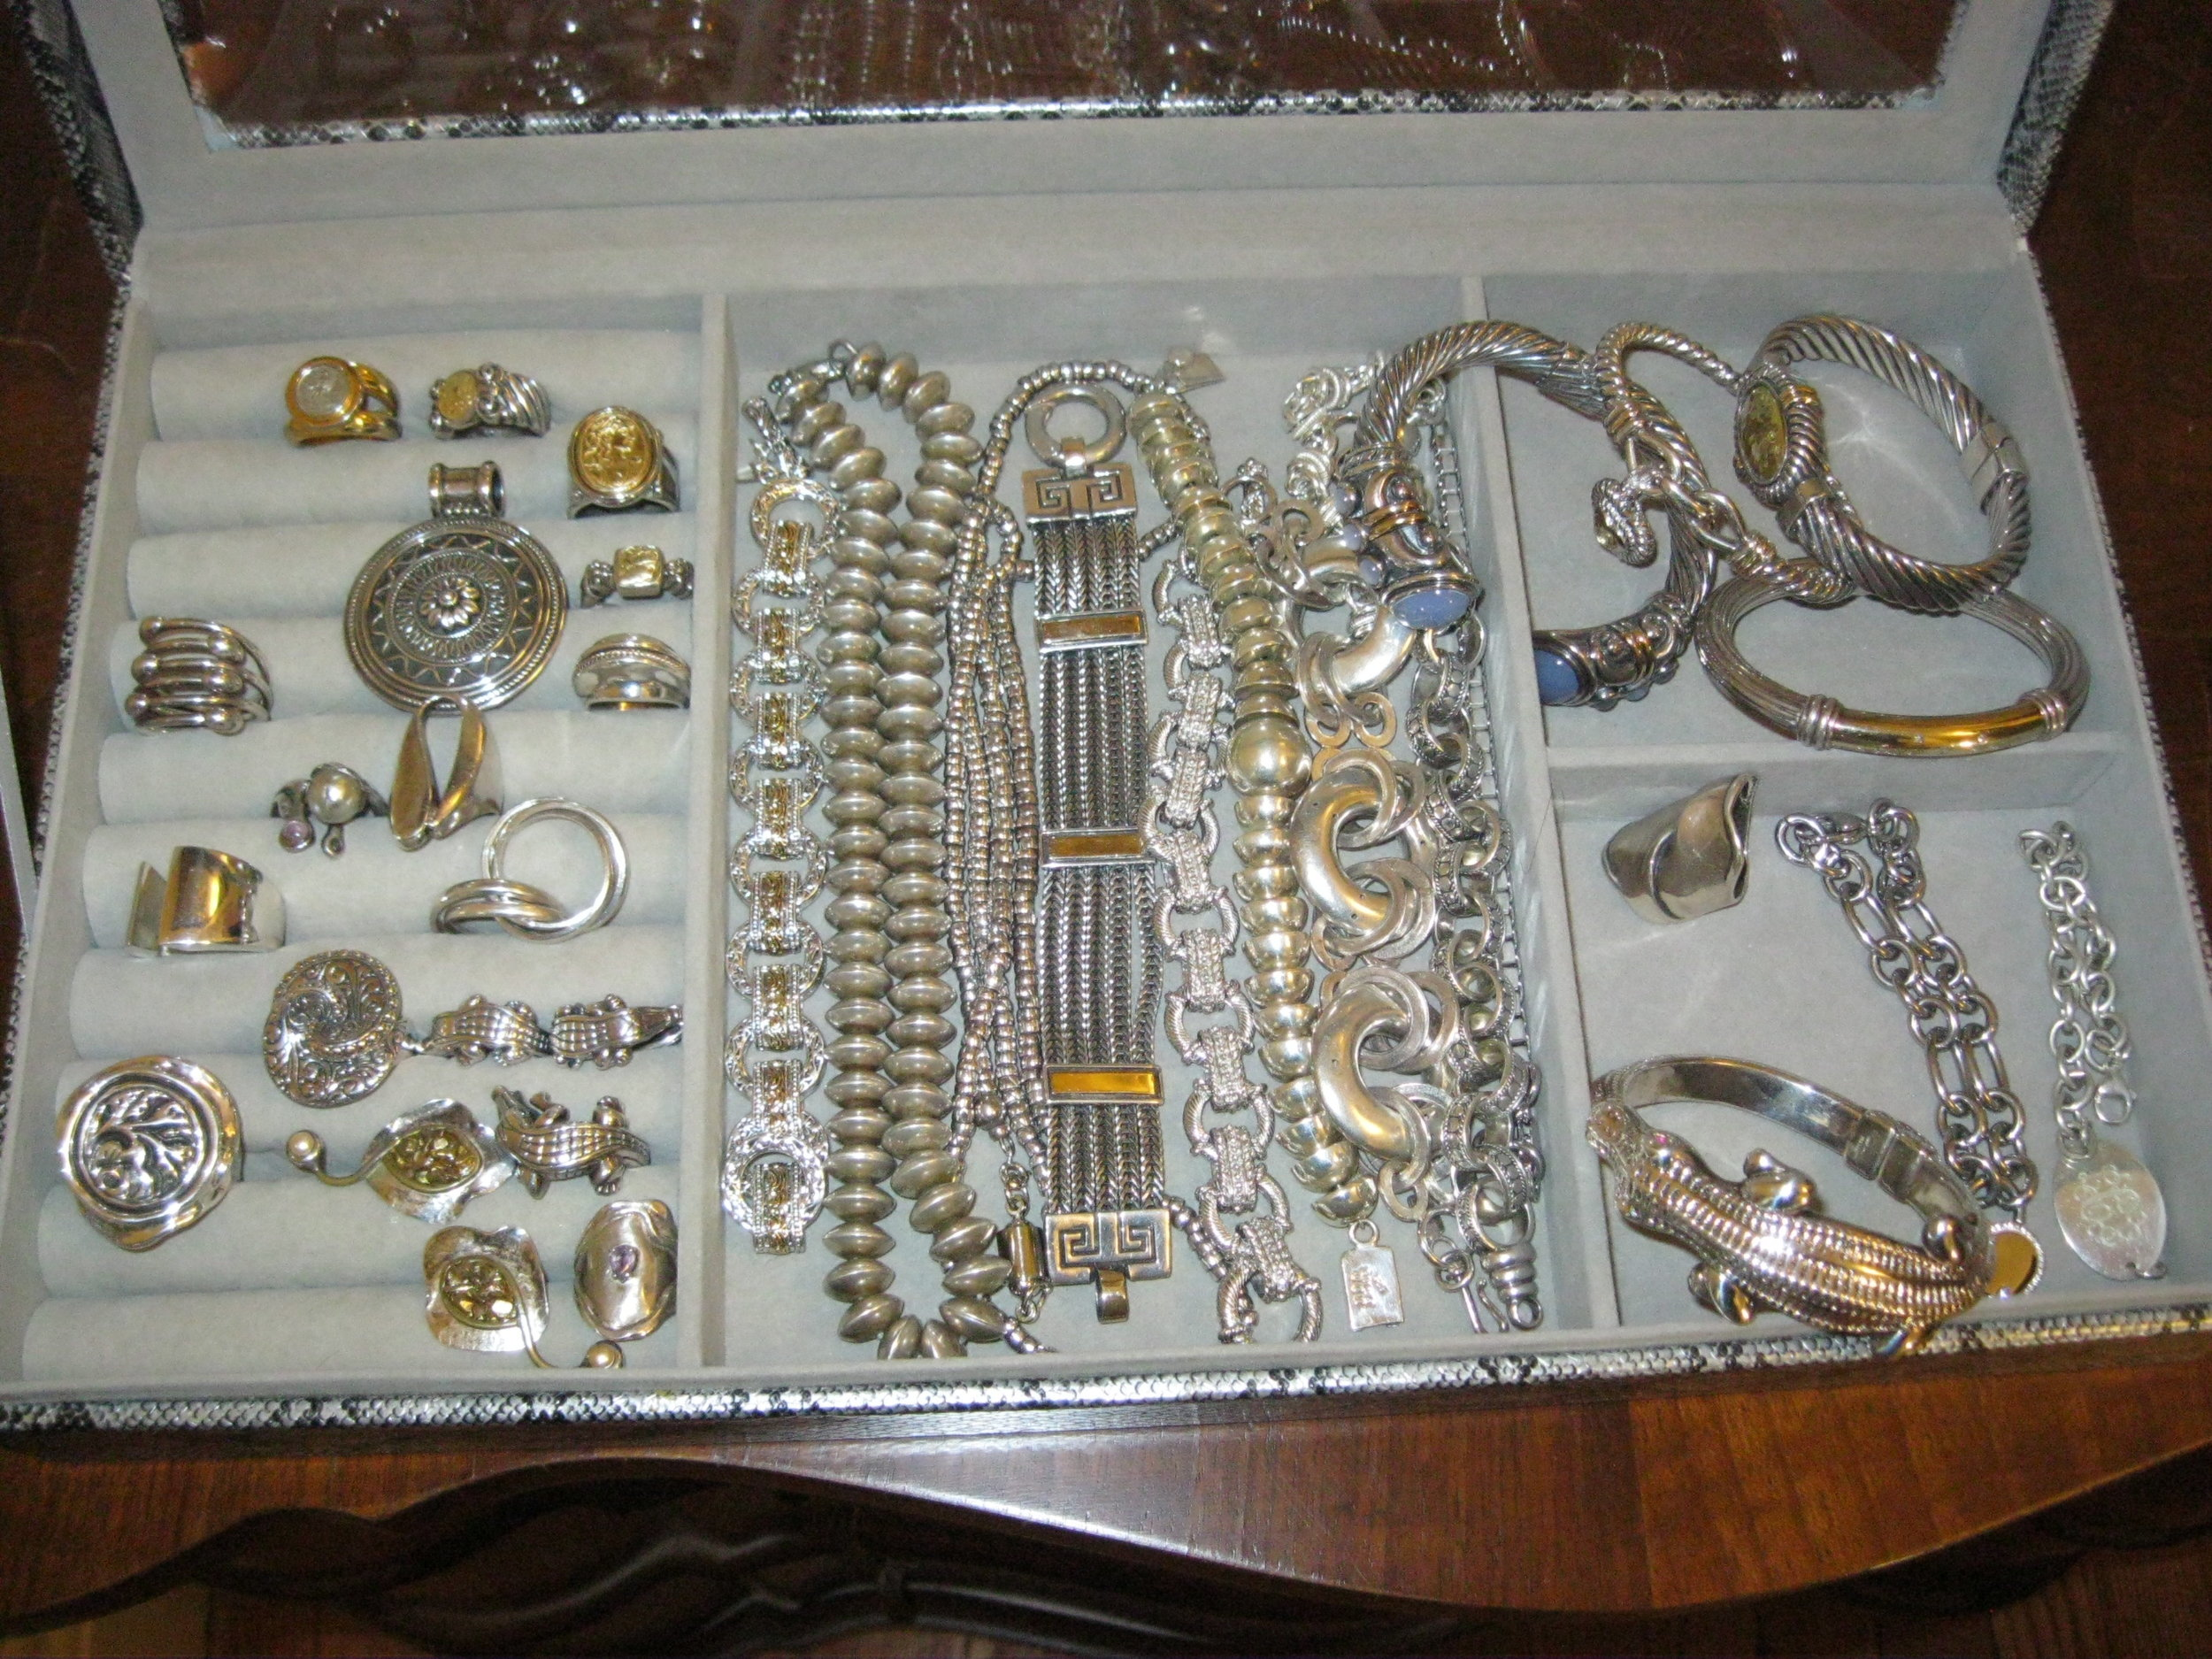 Newton Estate Sale: - DEC. 9, 2017Huge collection of finer costume jewelry, furnishings & décor!